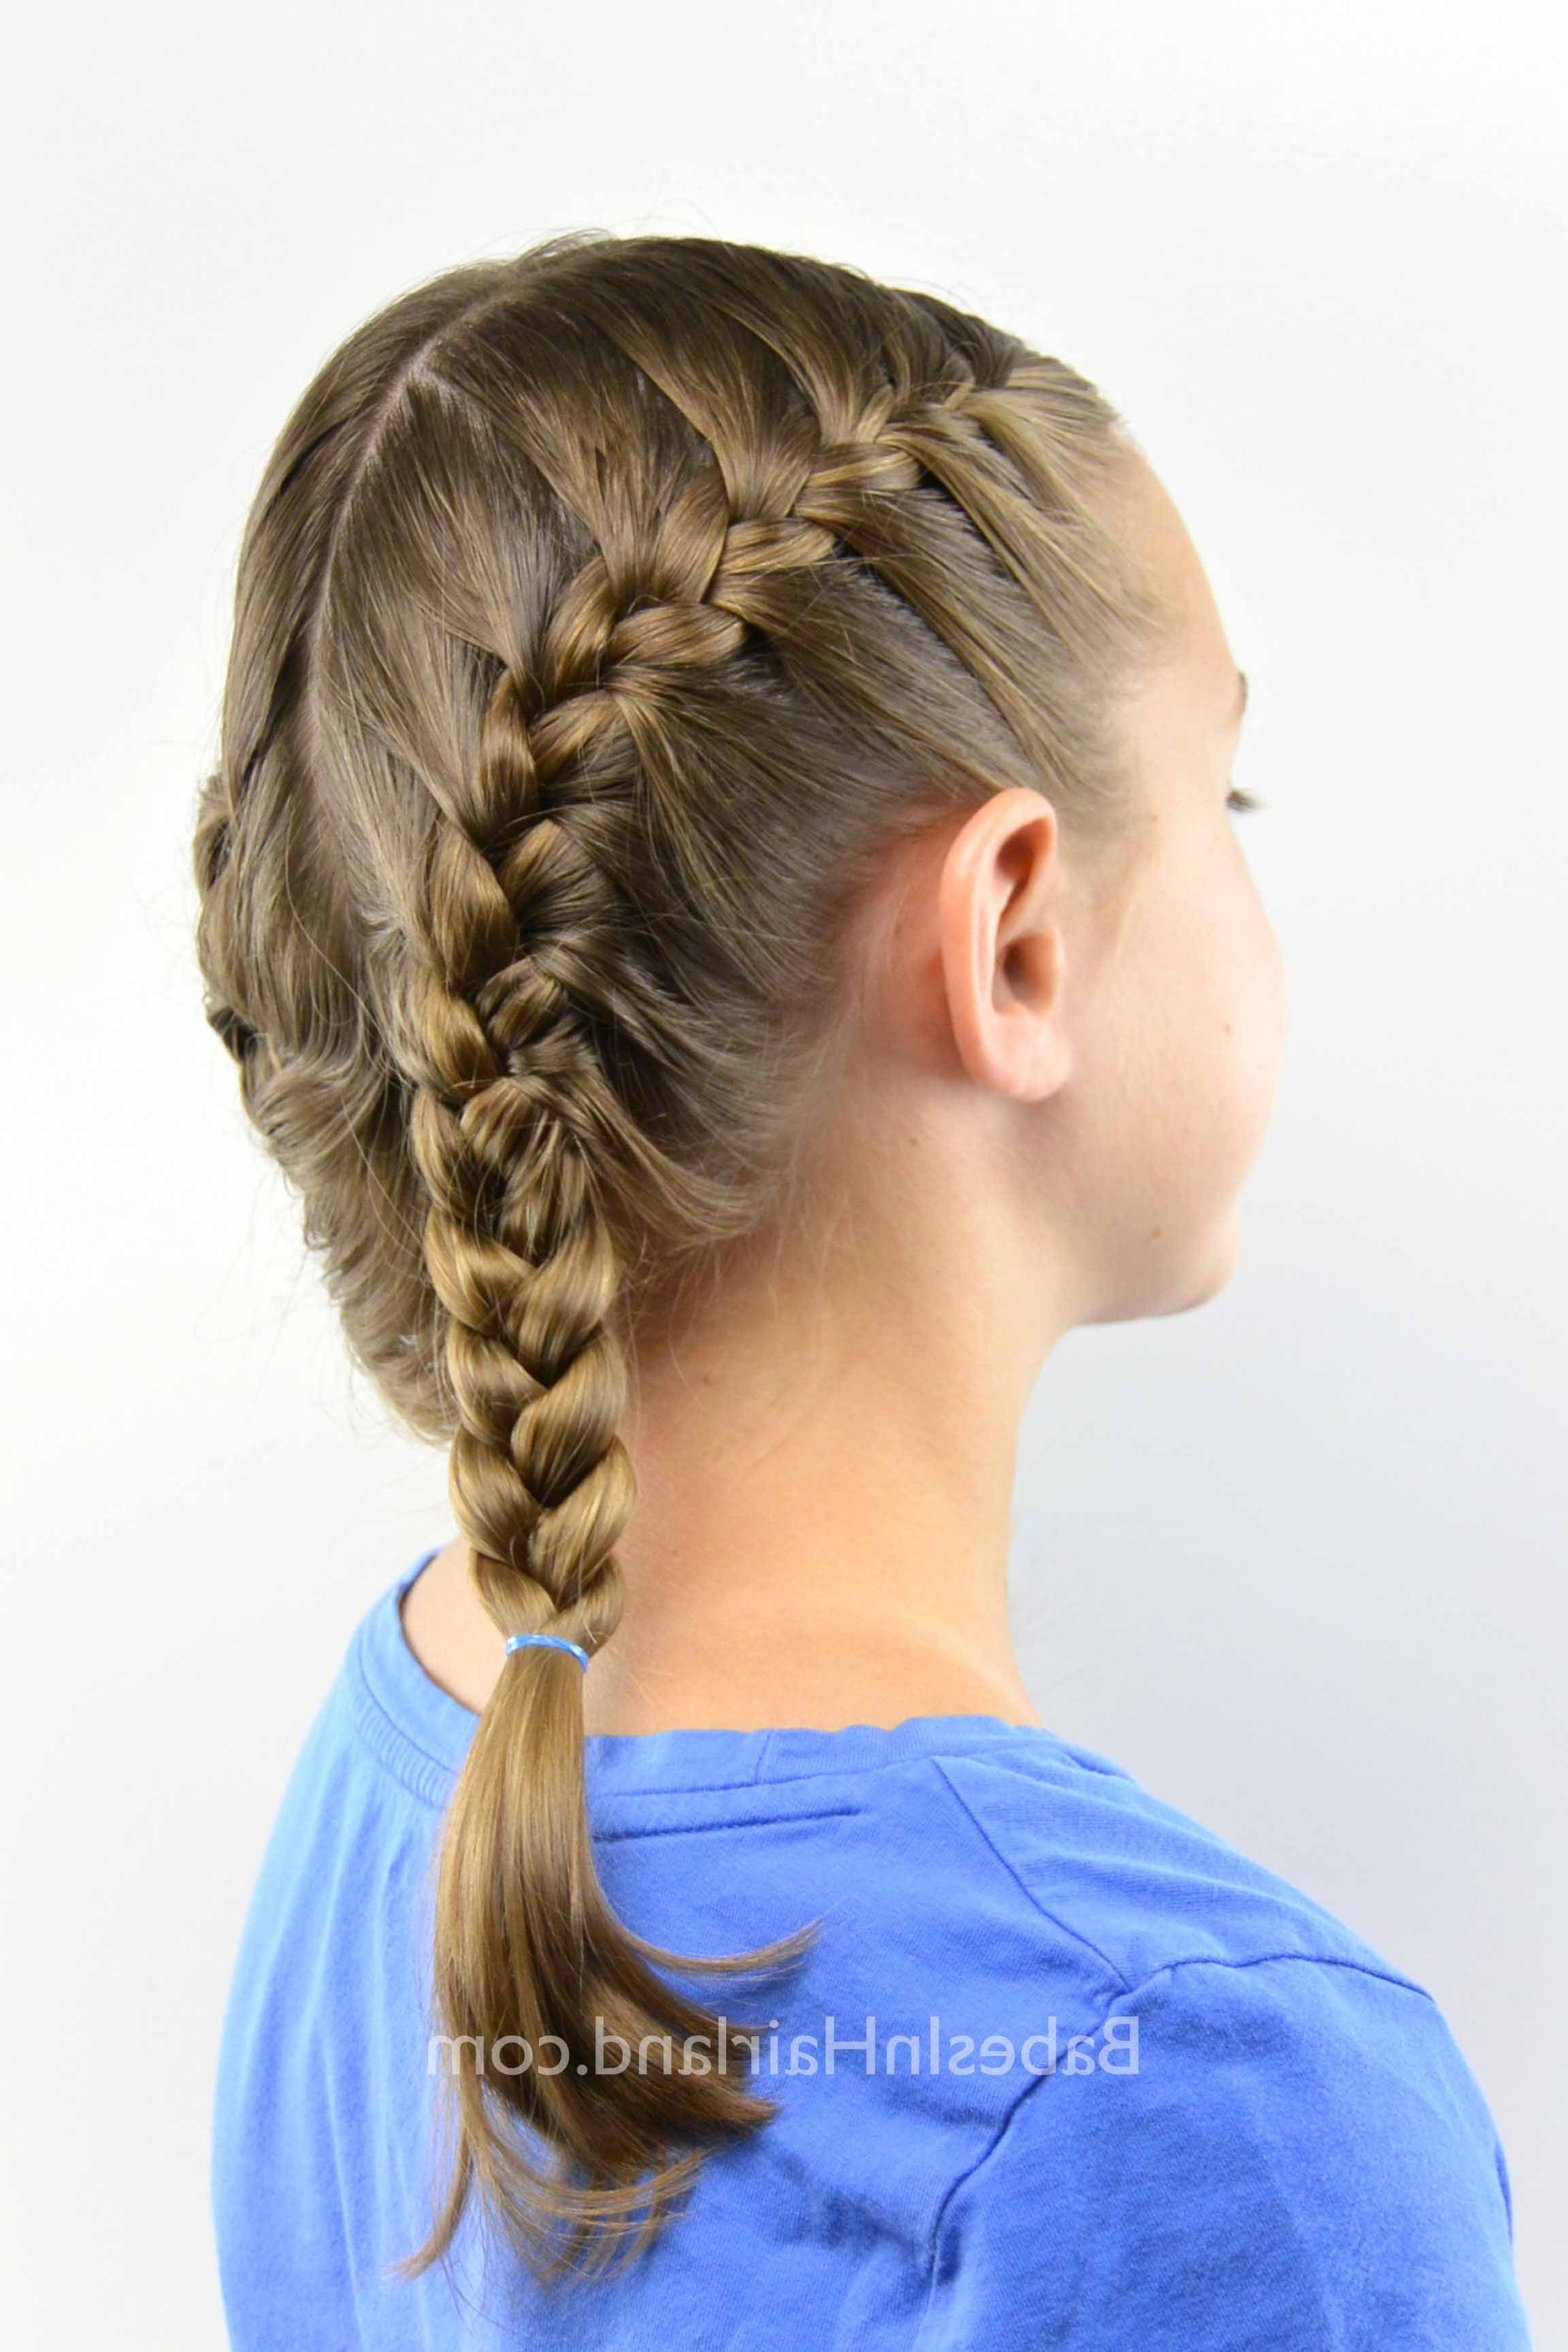 Widely Used Loose Hair With Double French Braids For How To Get A Tight French Braid – Babes In Hairland (View 14 of 15)